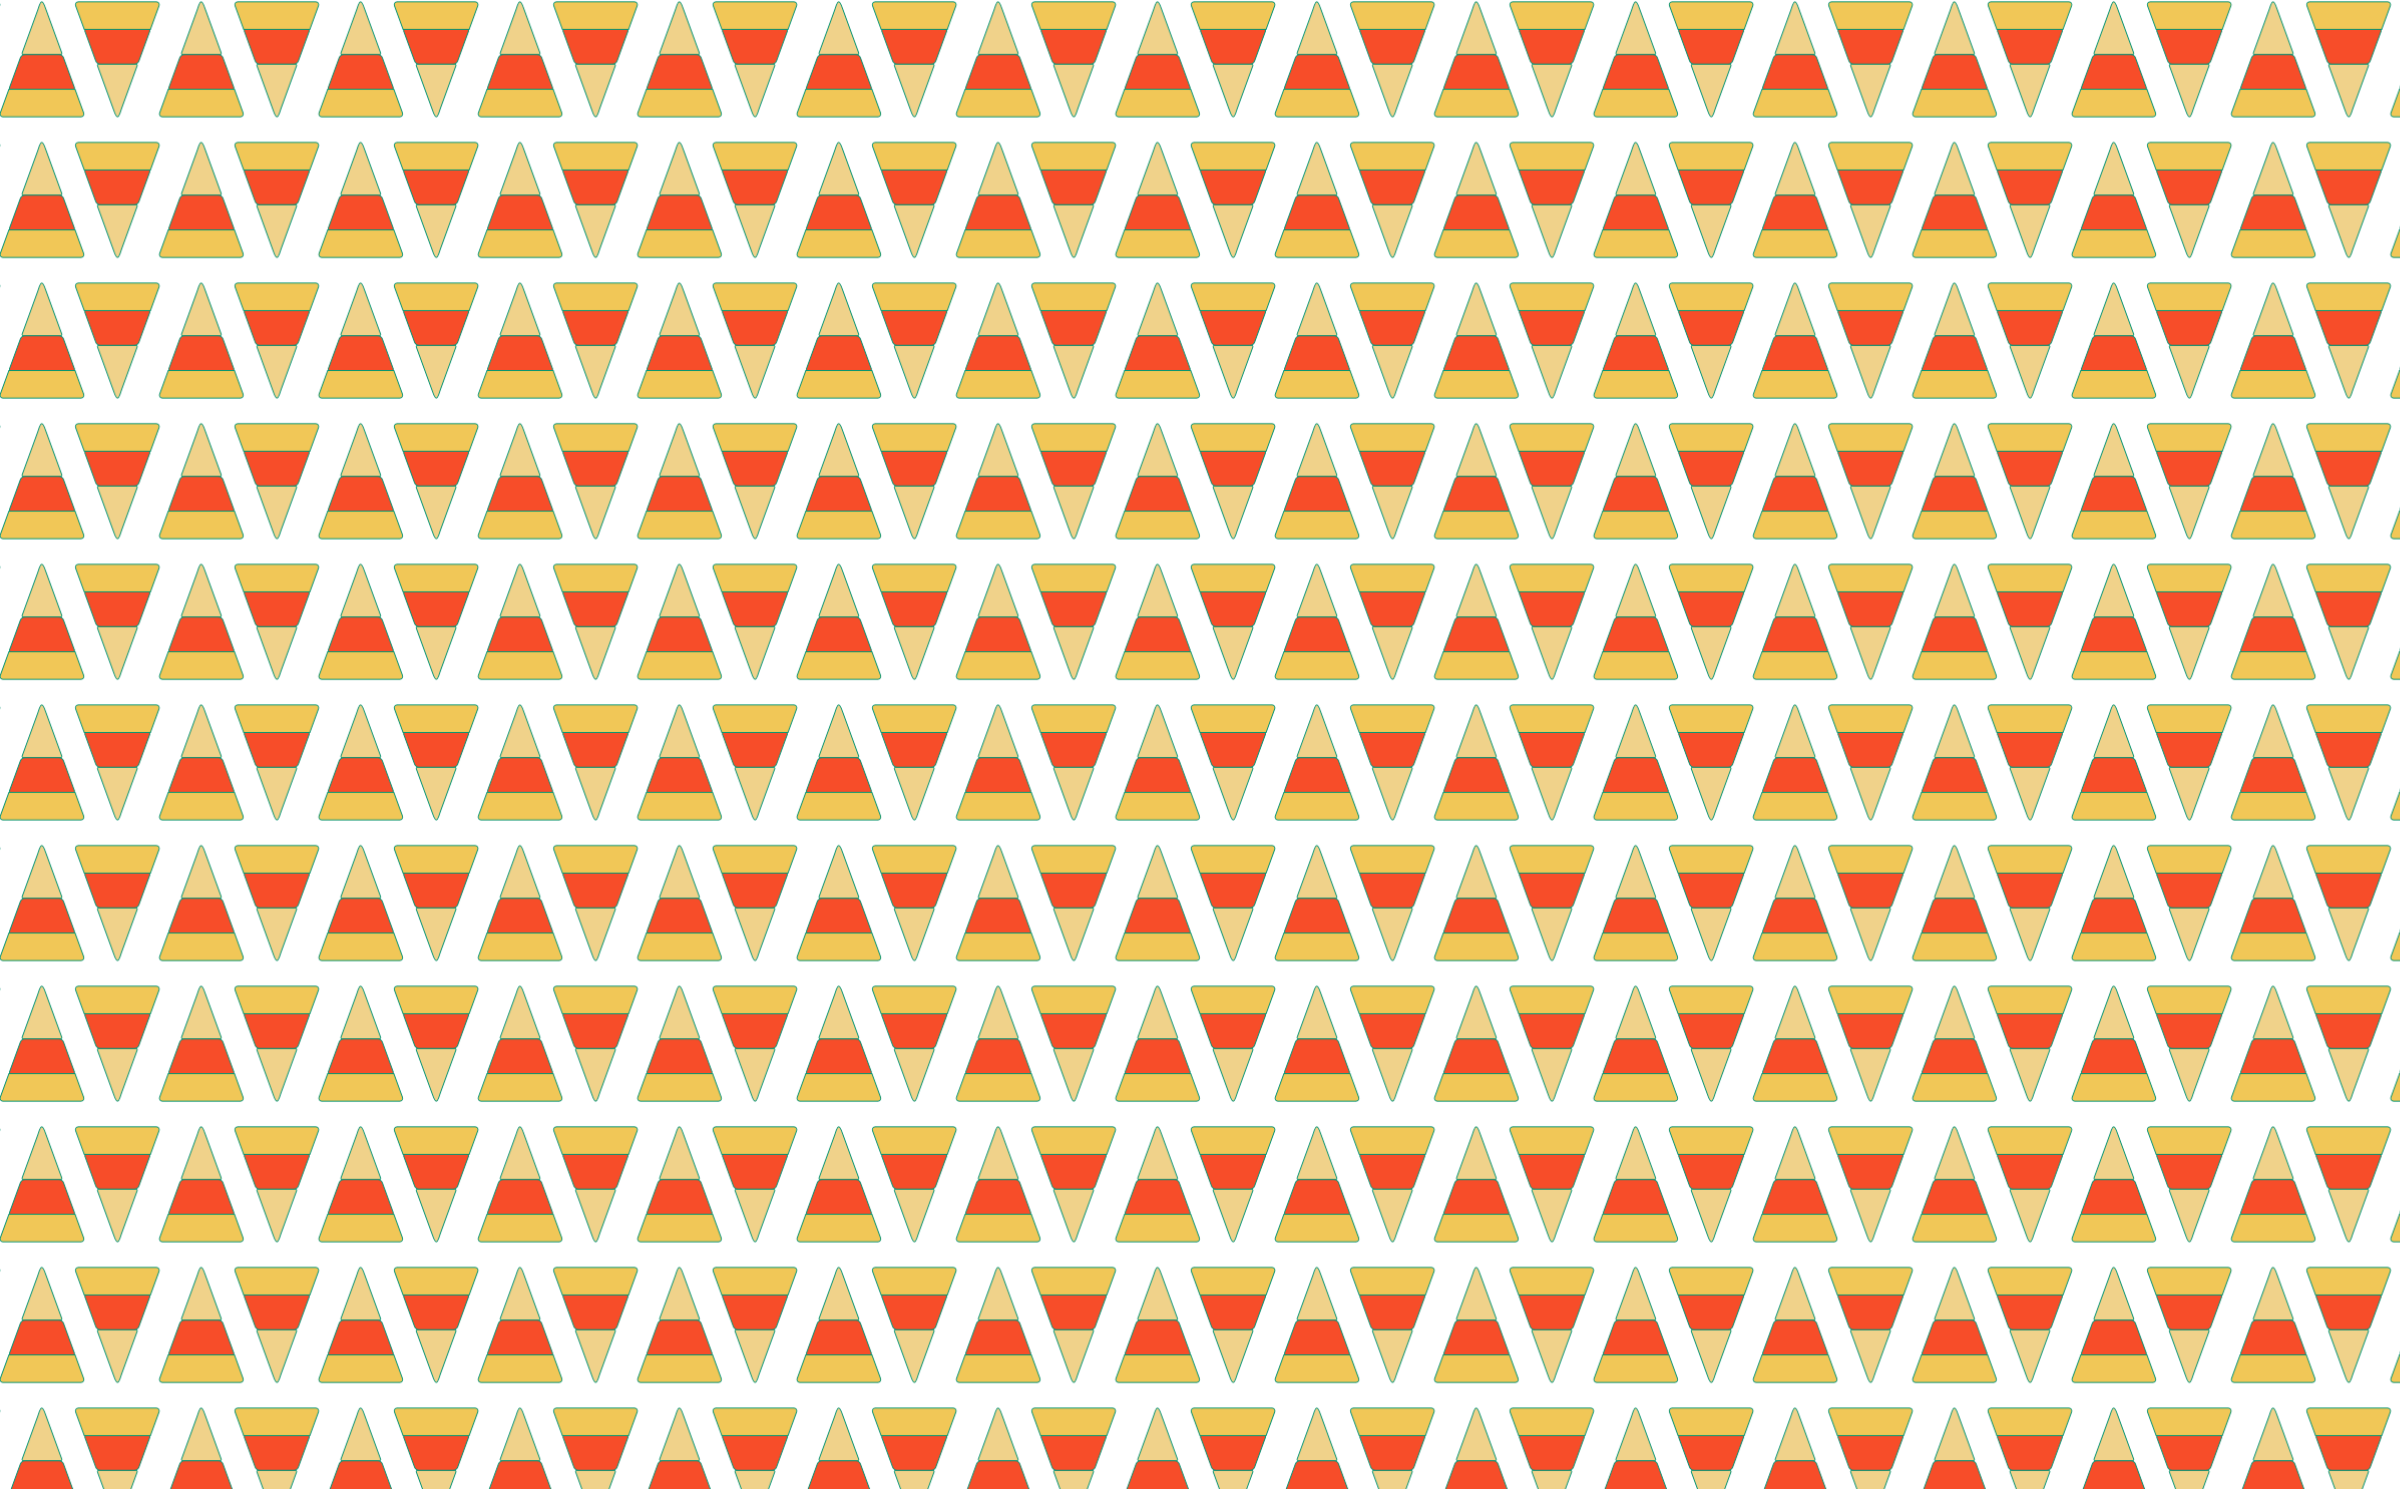 Candy Corn Seamless Pattern by GDJ